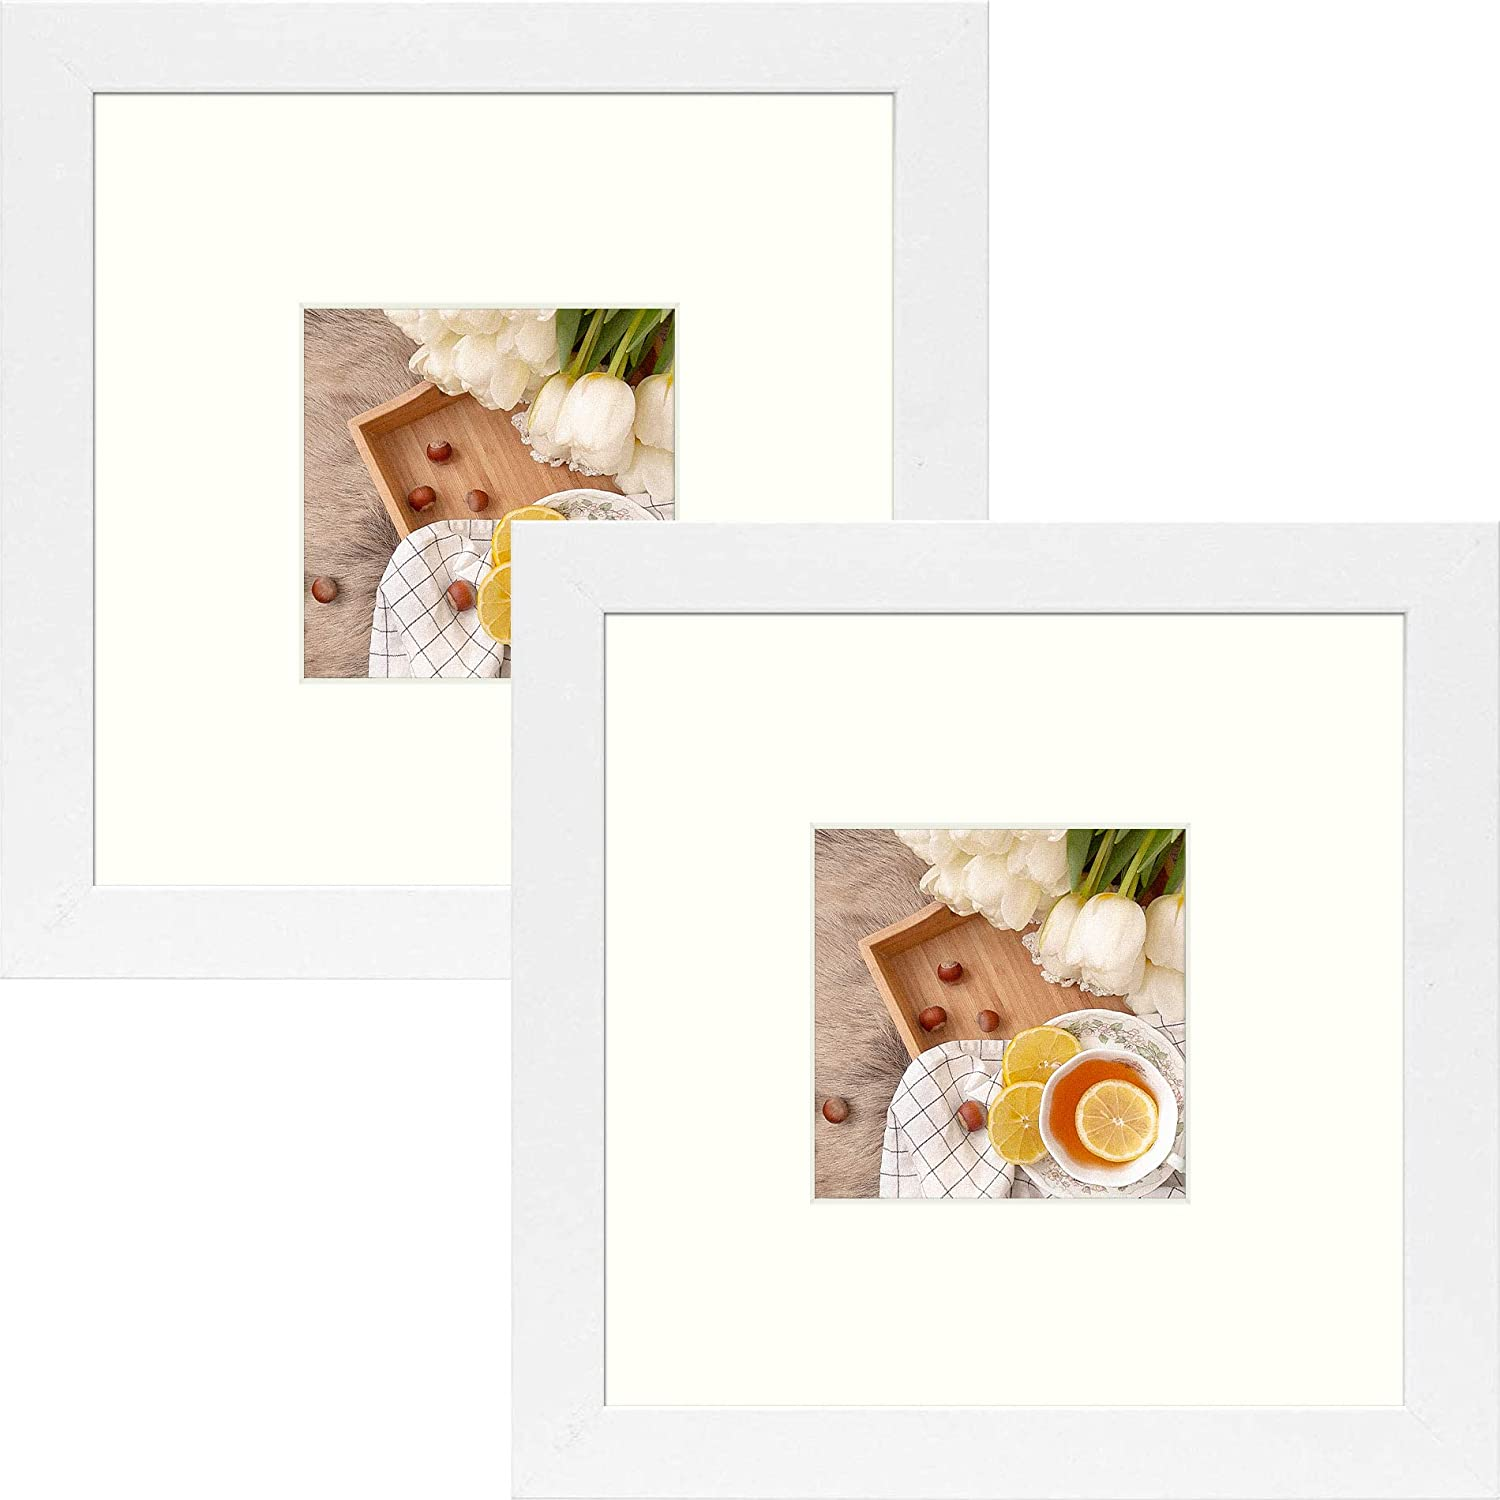 Frametory, 8x8 Square, Instagram Picture Frame - Made to Display Pictures 4x4 Photo with Ivory Color Mat - Wide Molding - Preinstalled Wall Mounting Hardware (2, White)